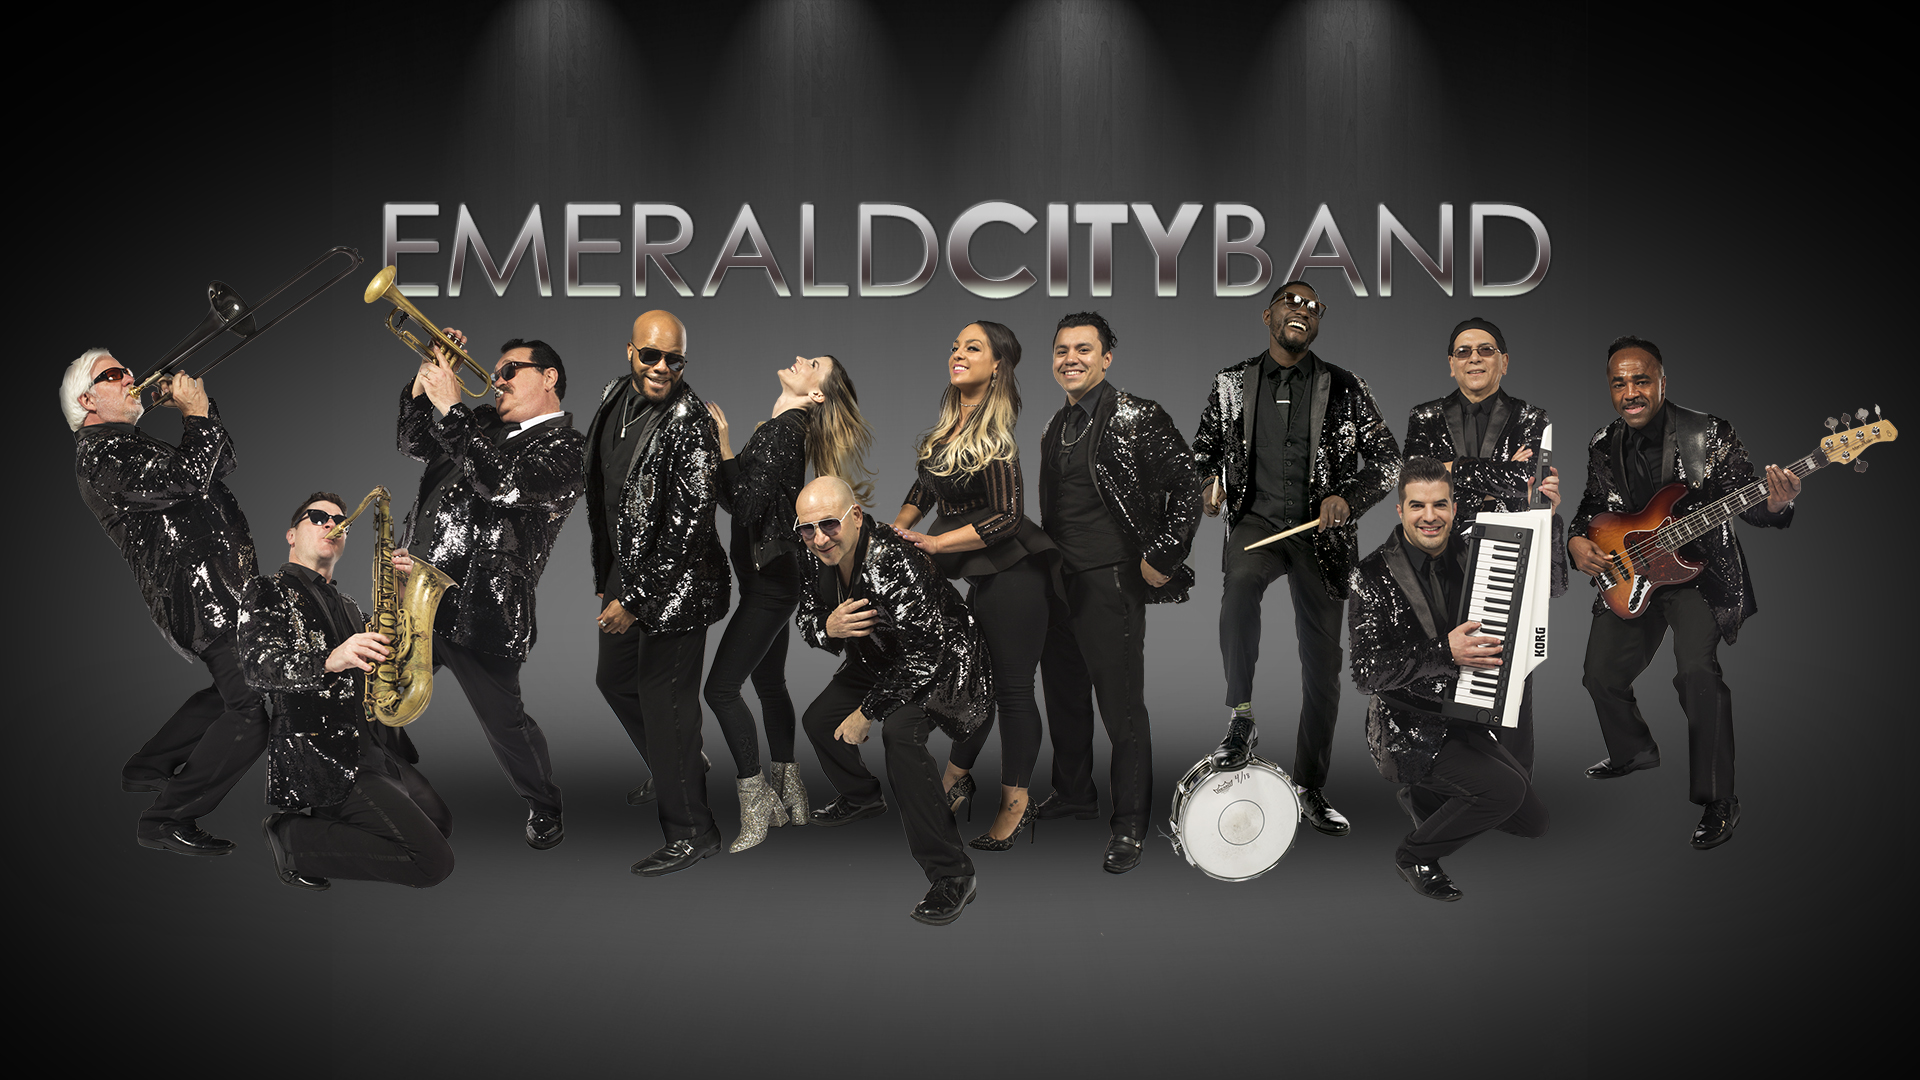 Emerald City Band - The nation's best party band for weddings and events